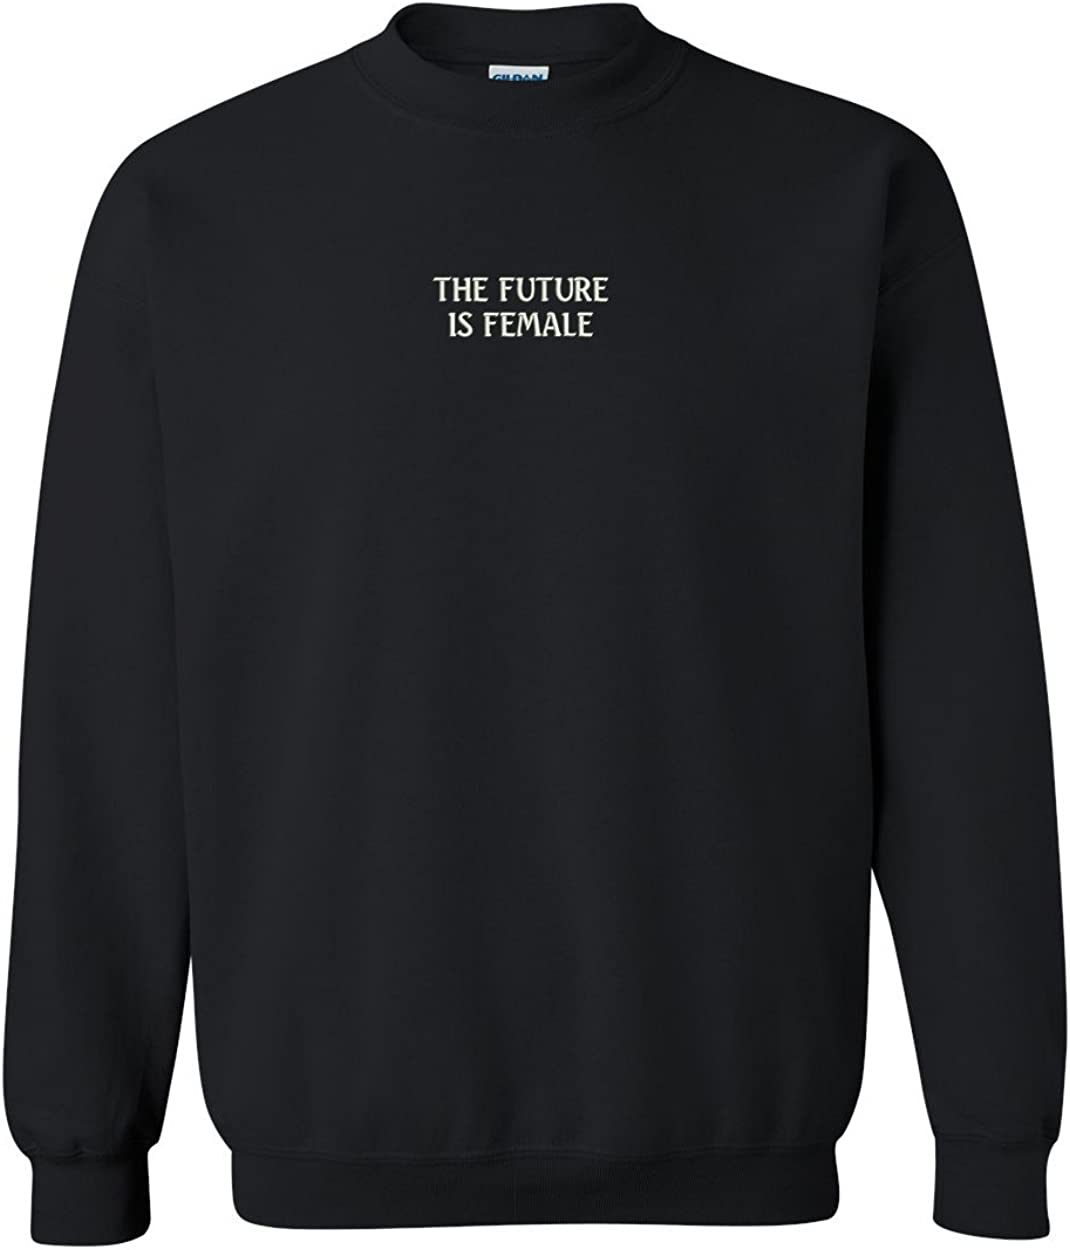 Trendy Apparel Shop The Future is Female Embroidered Crewneck Sweatshirt